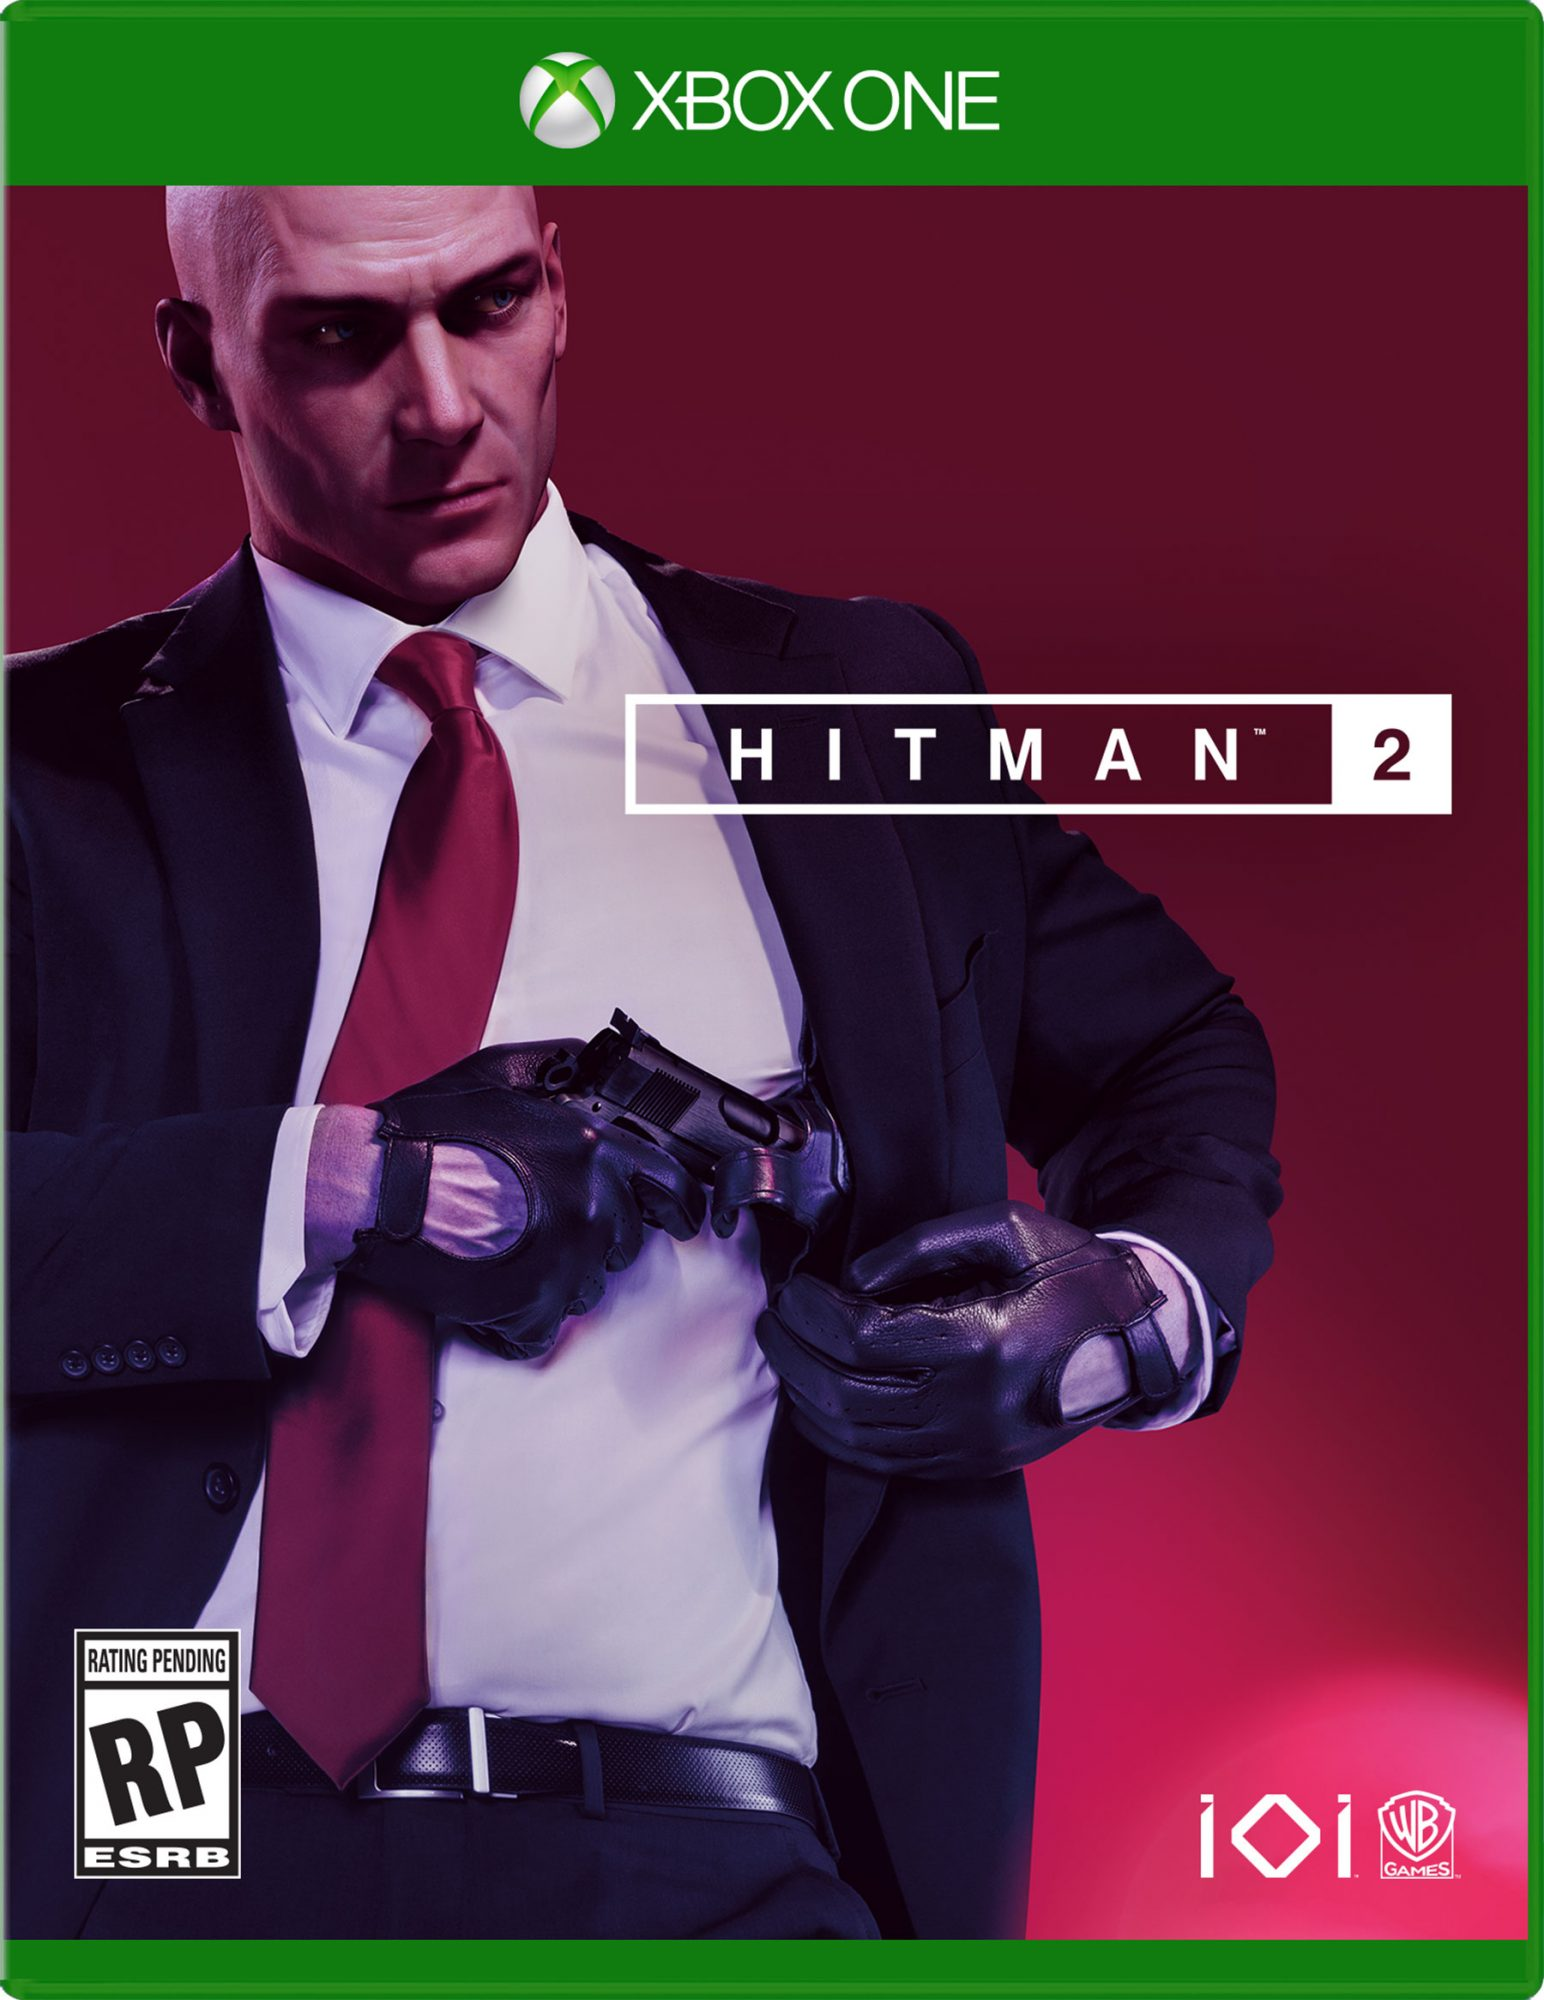 Hitman 2 Trailer Brings Back Agent 47 With New Sniper Assassin Co